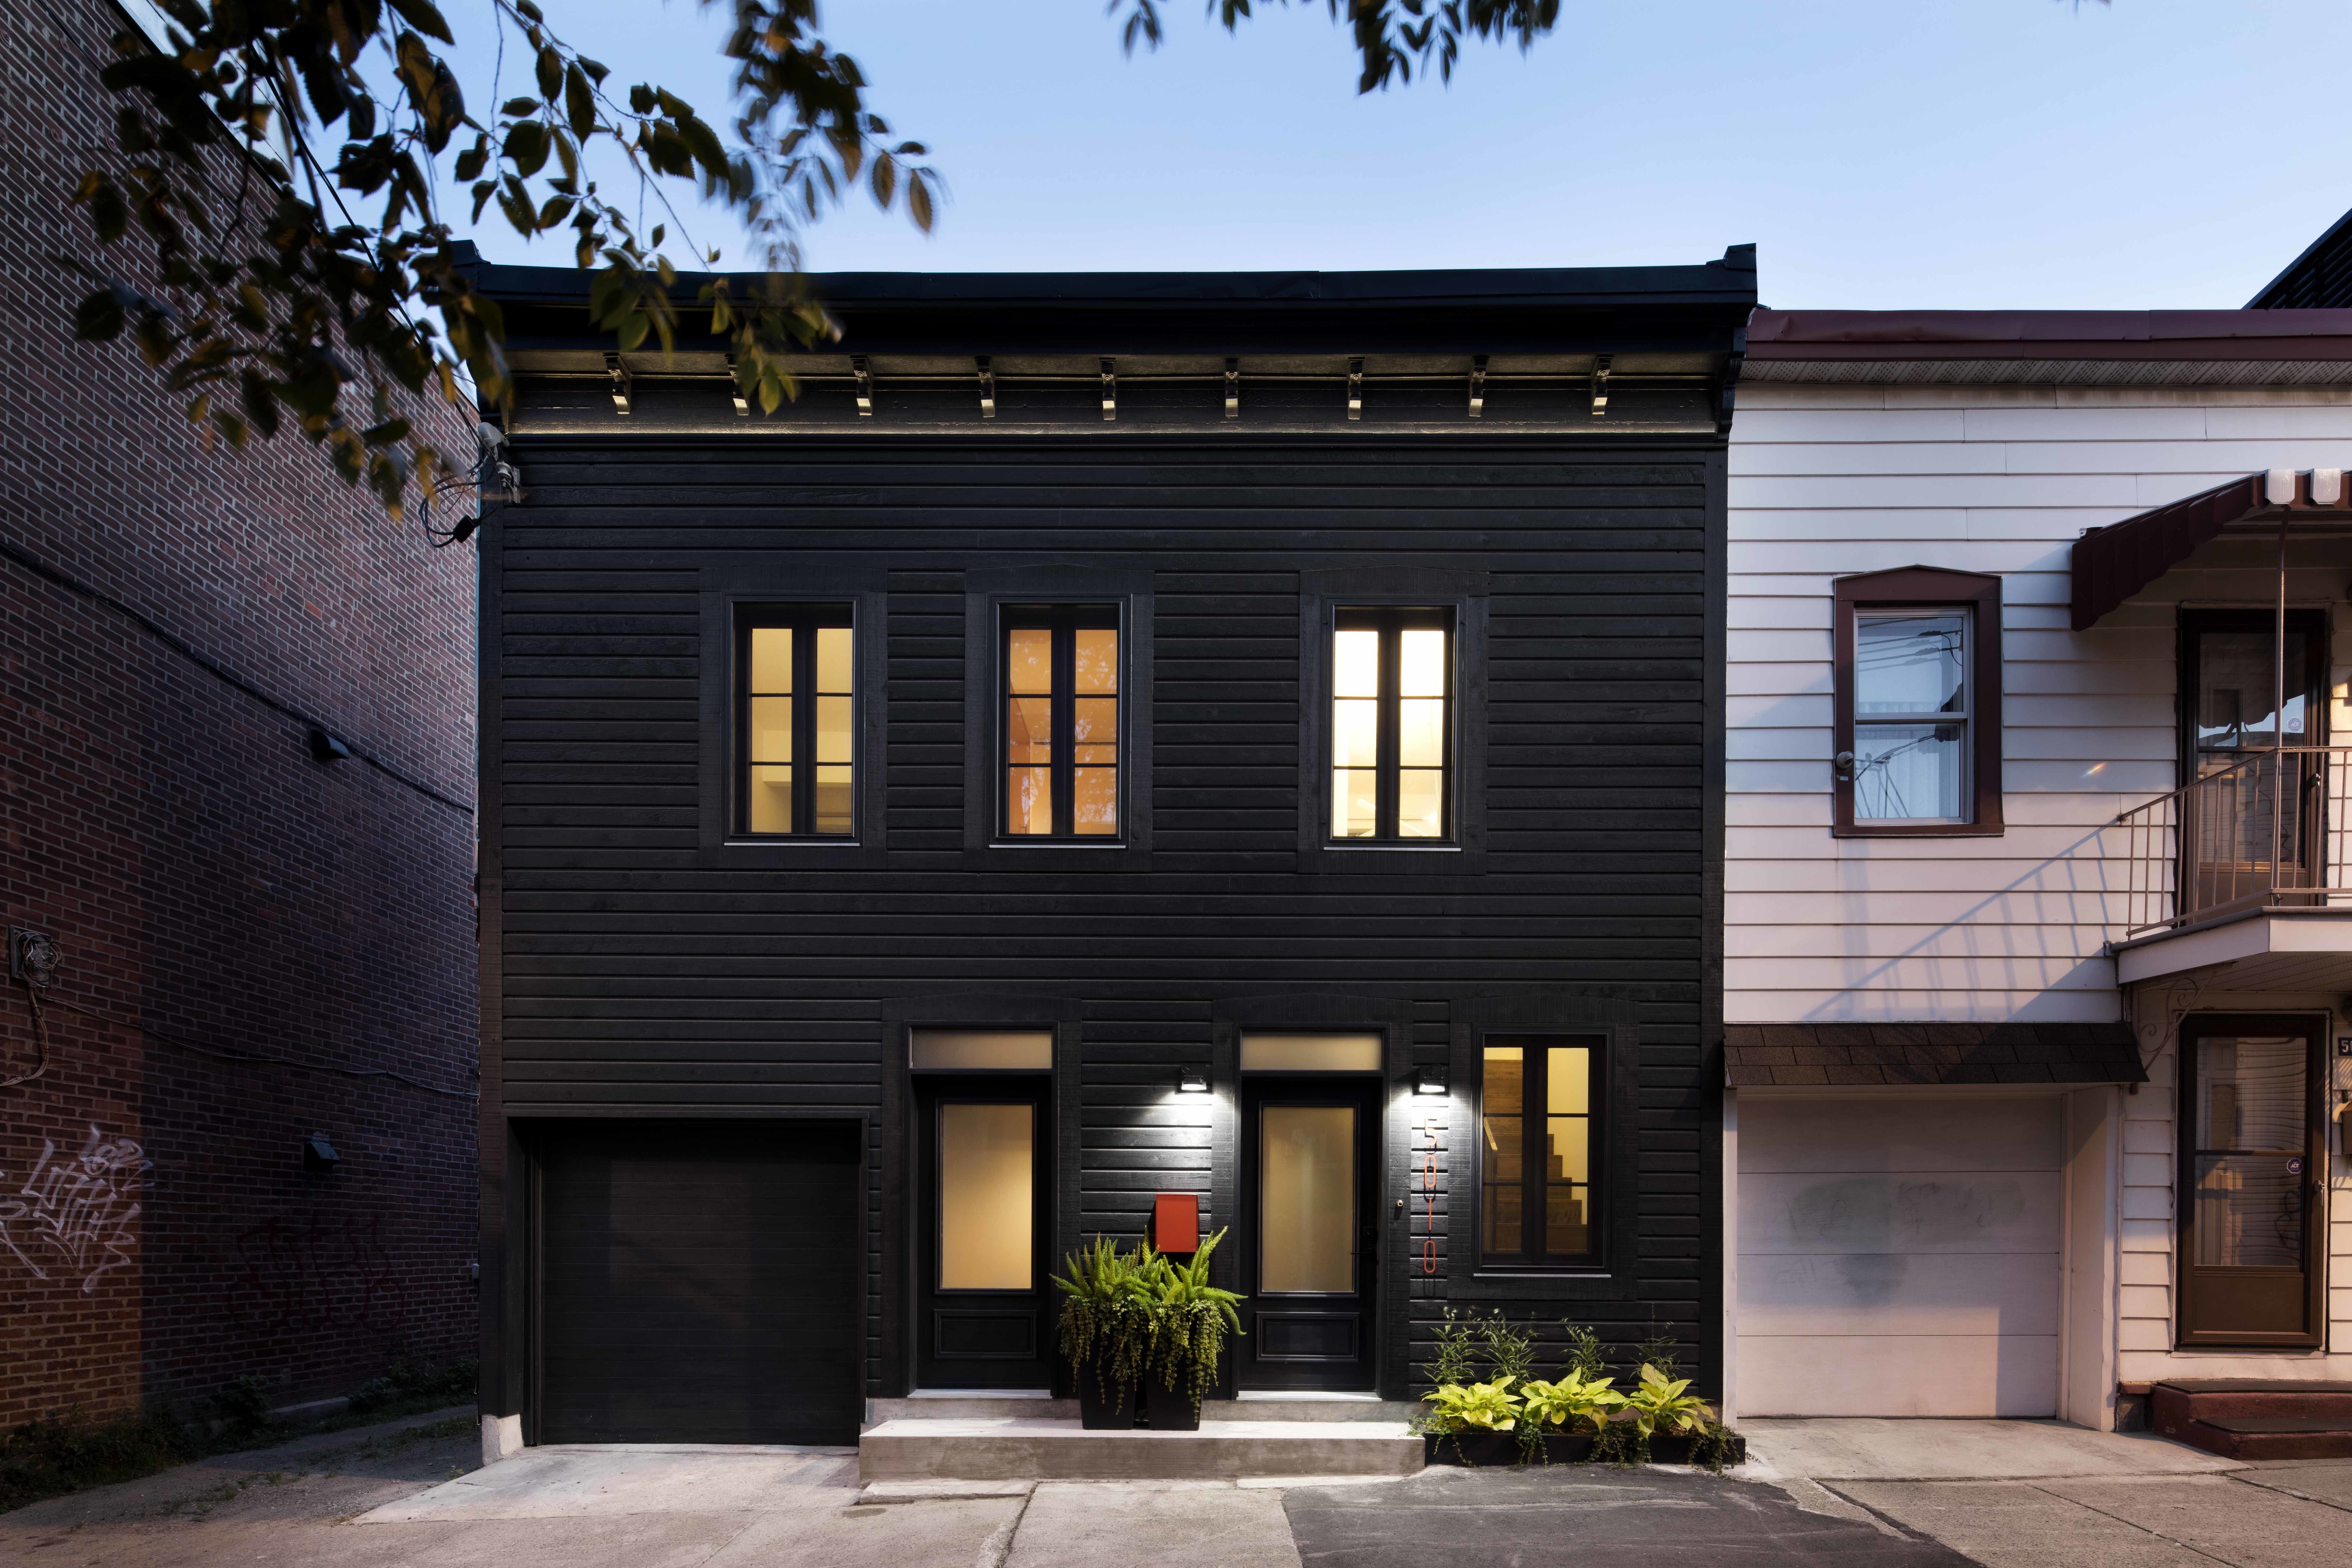 Photo 1 Of 7 In A Monochromatic Renovation For A 19th Century Black House Exterior House Exterior Architecture